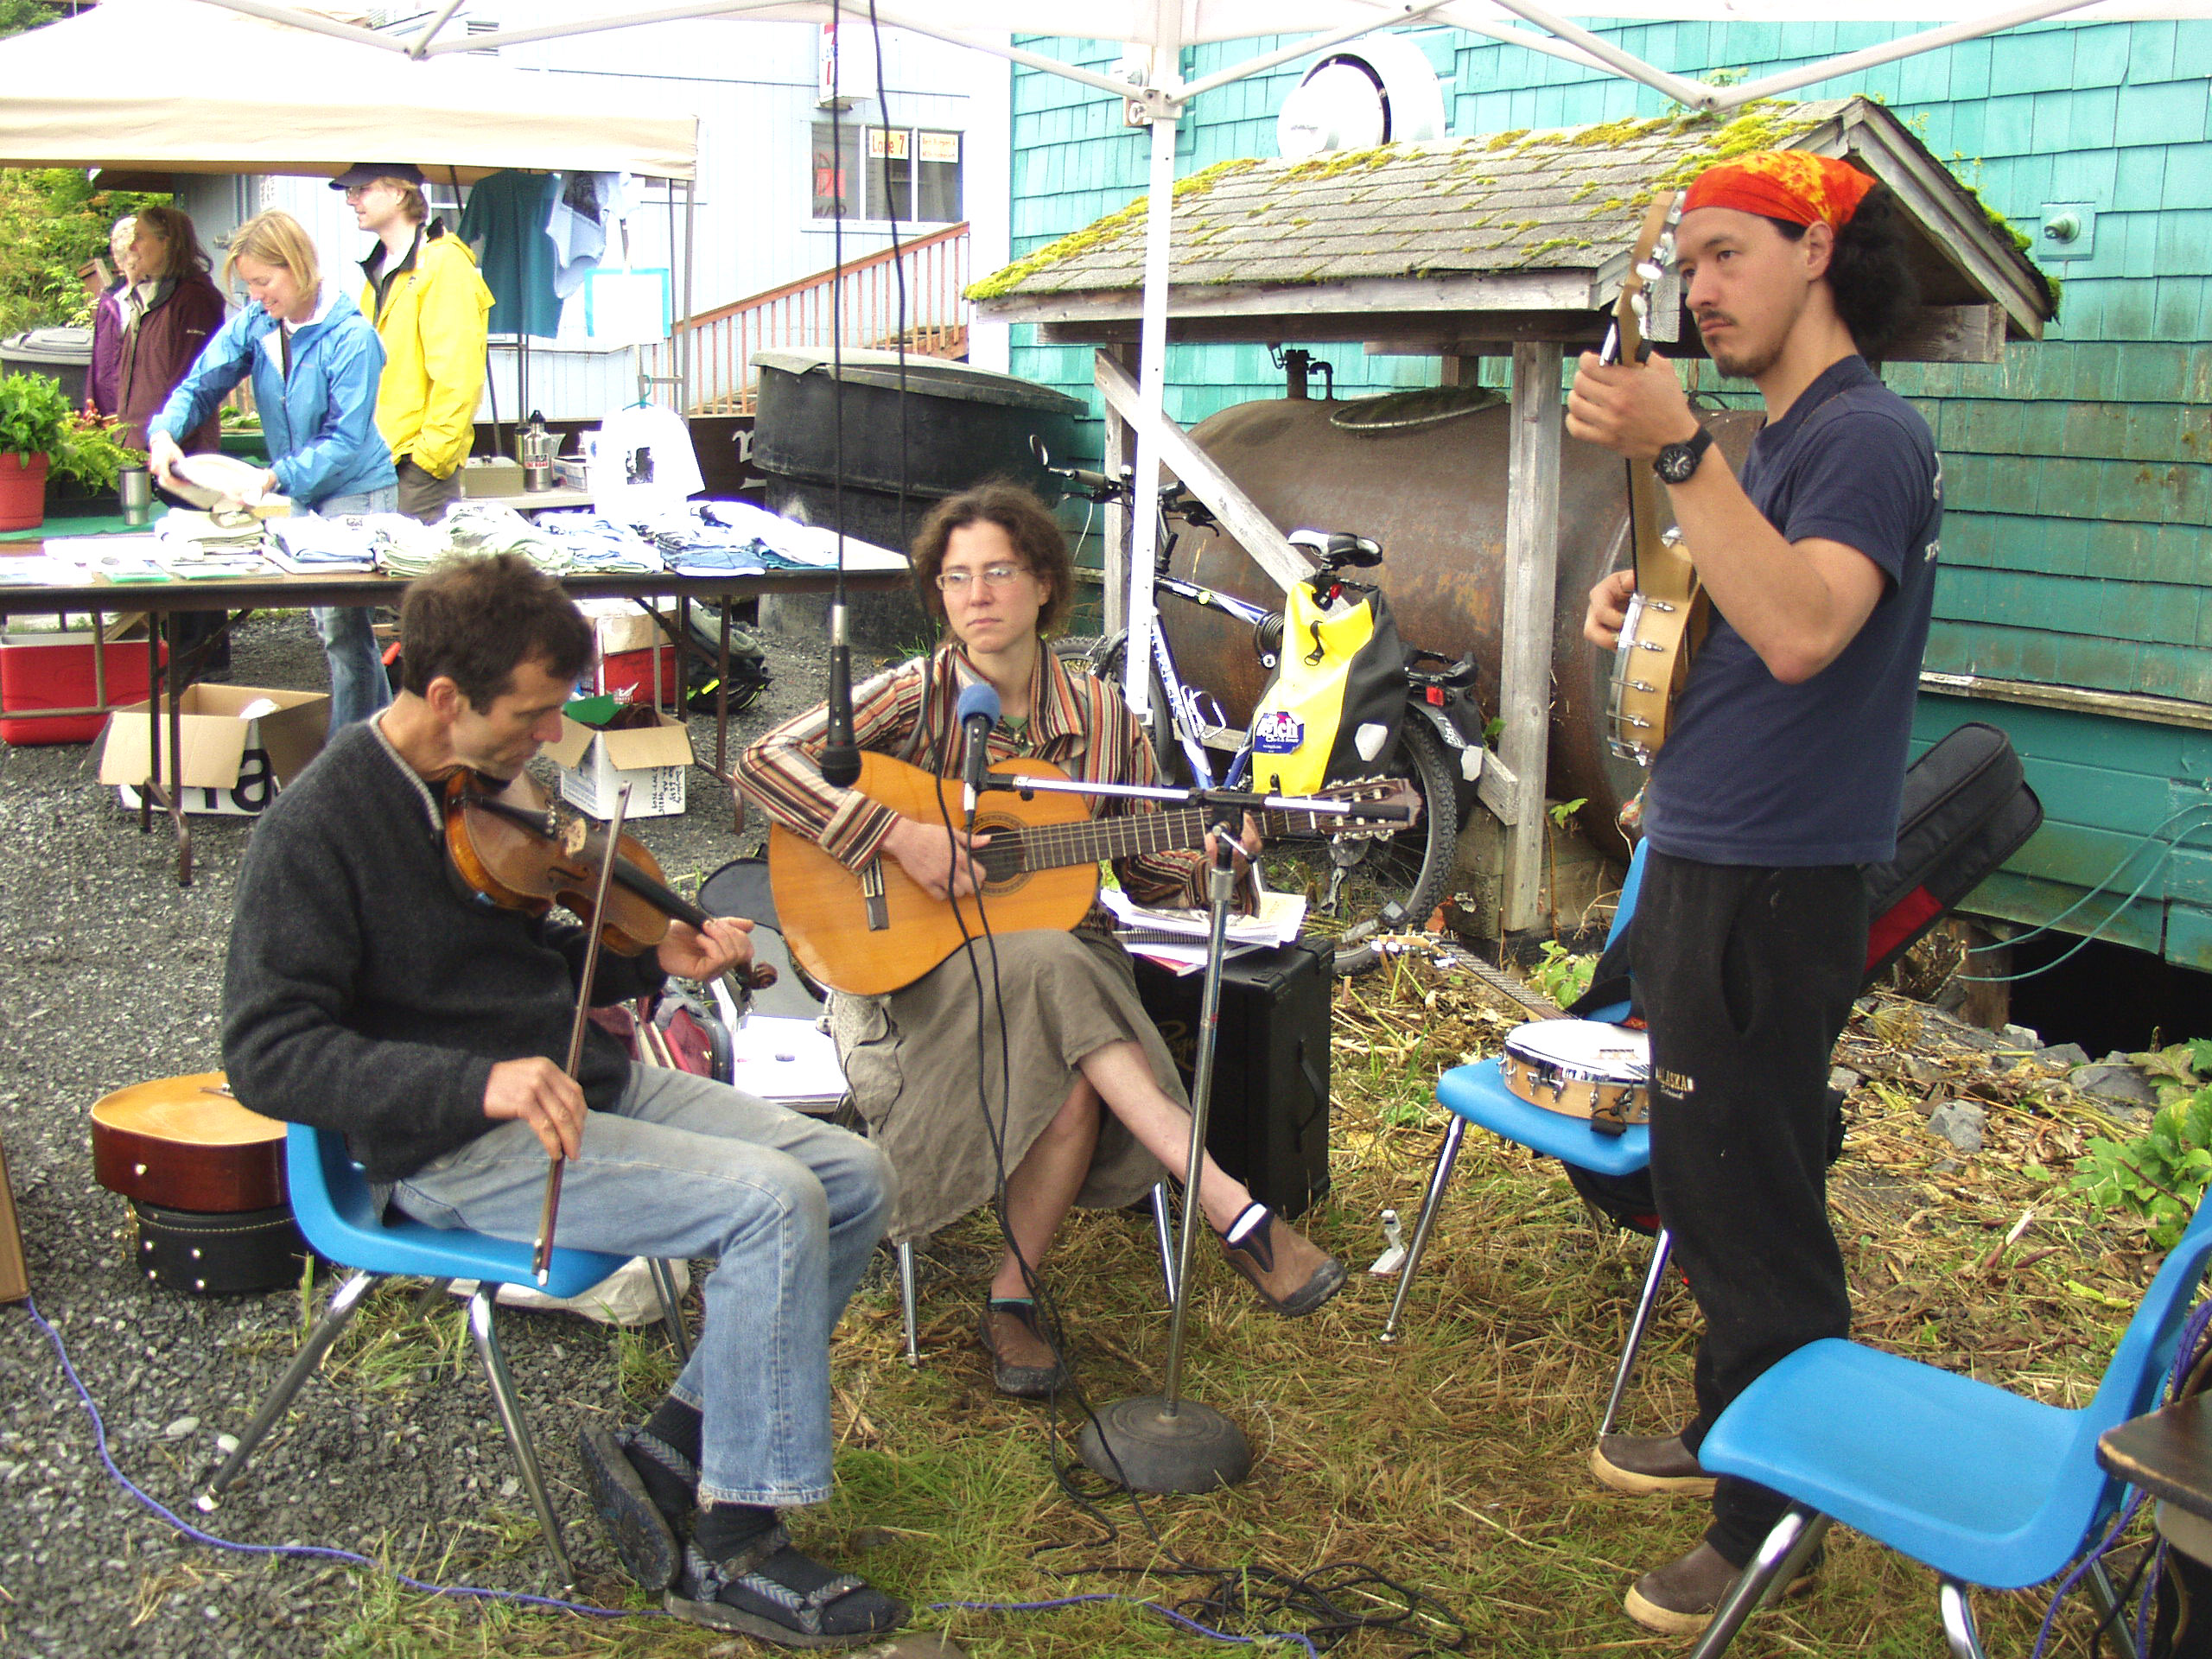 Musicians play in the jam session tent